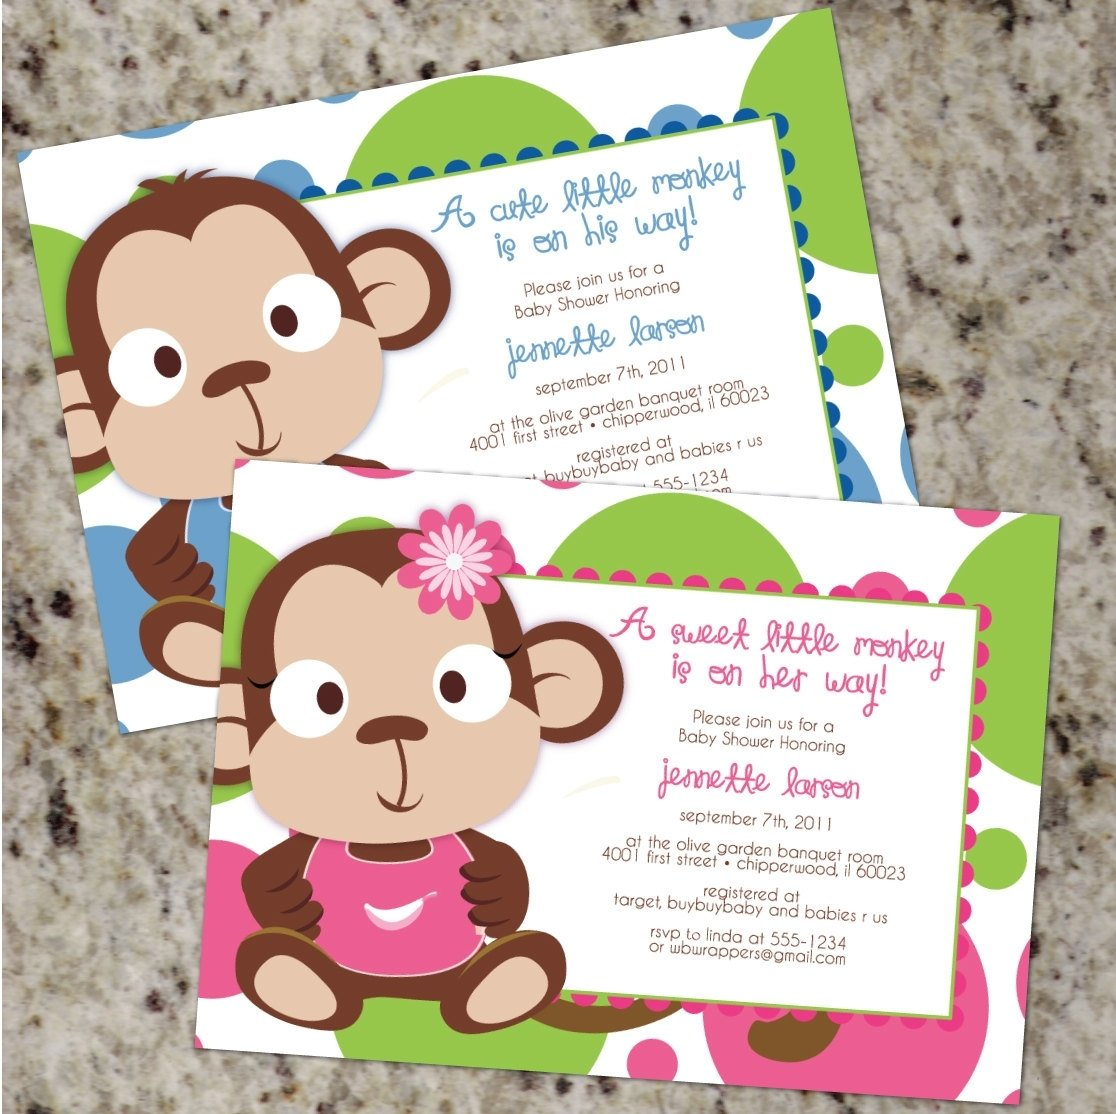 10 Most Popular Monkey Themed Baby Shower Ideas monkey themed baby shower invitations monkey themed baby shower 2020